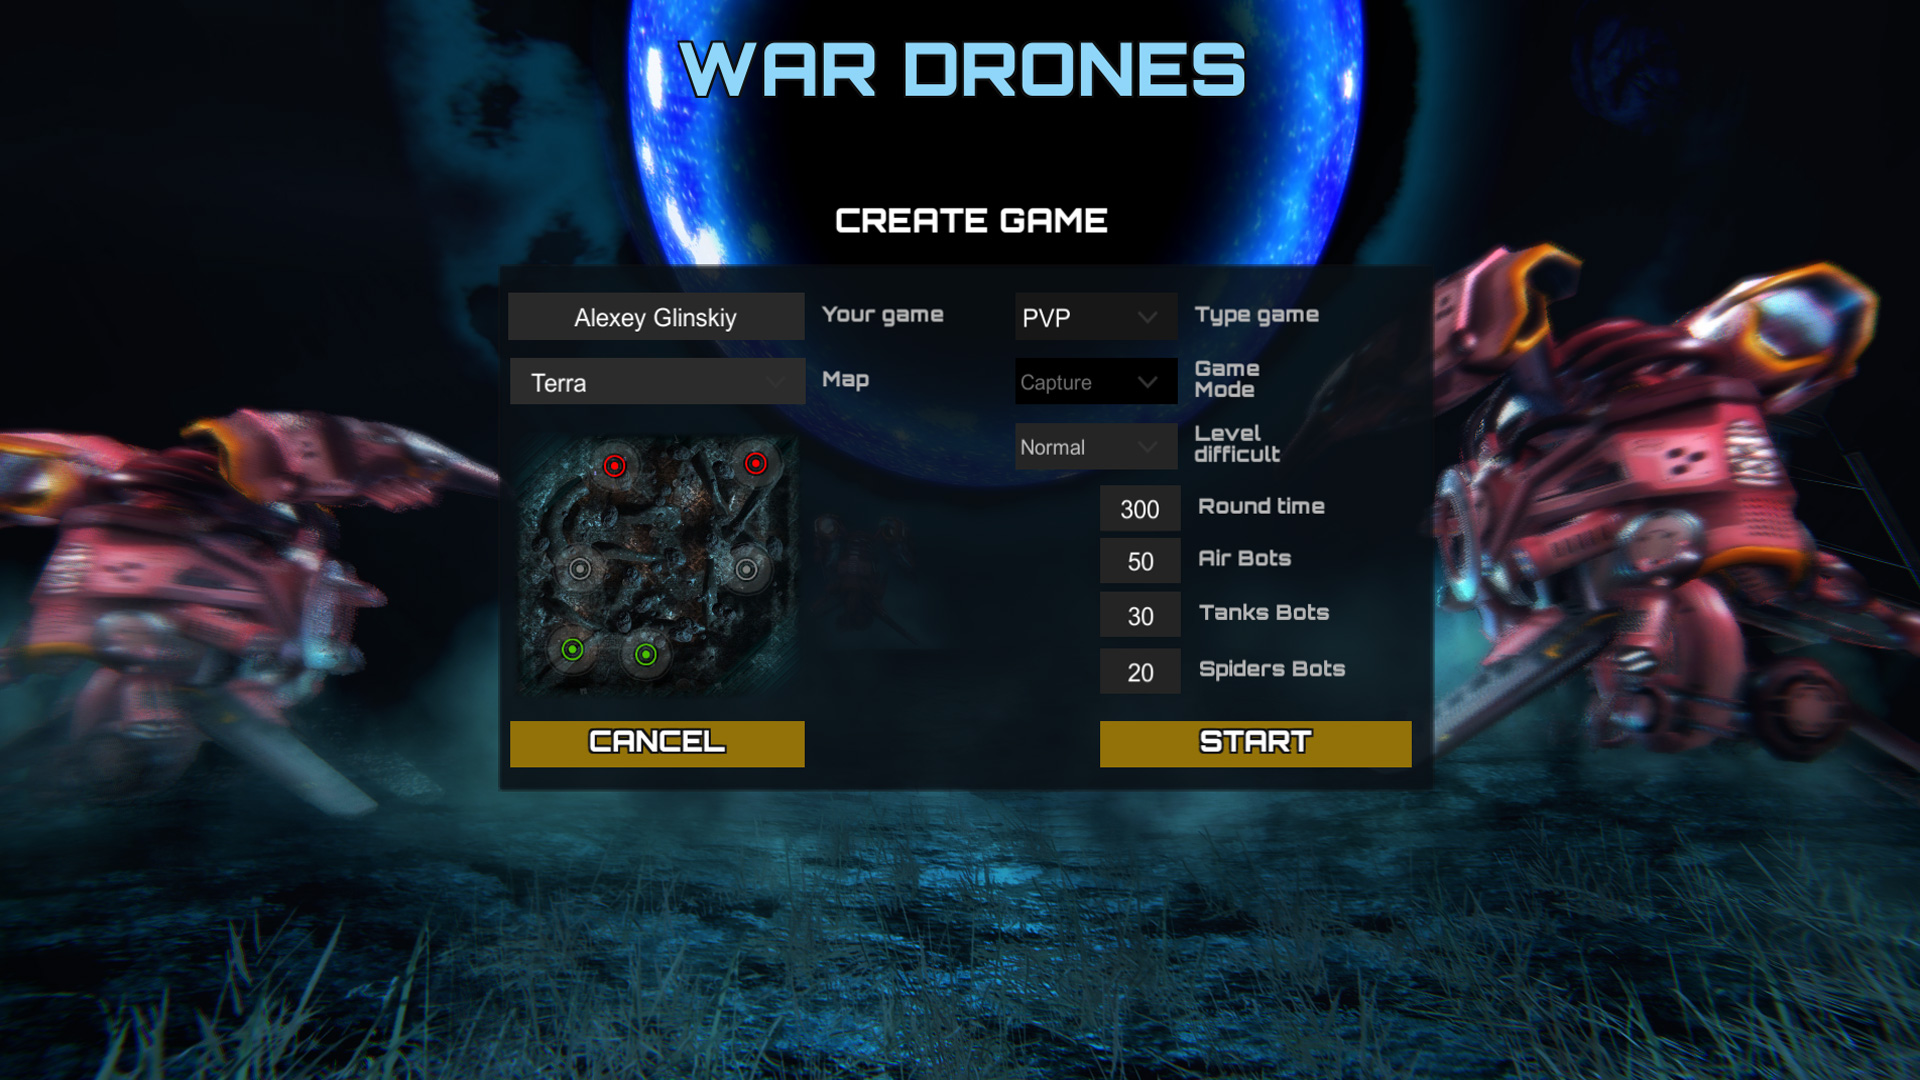 WAR DRONES screenshot